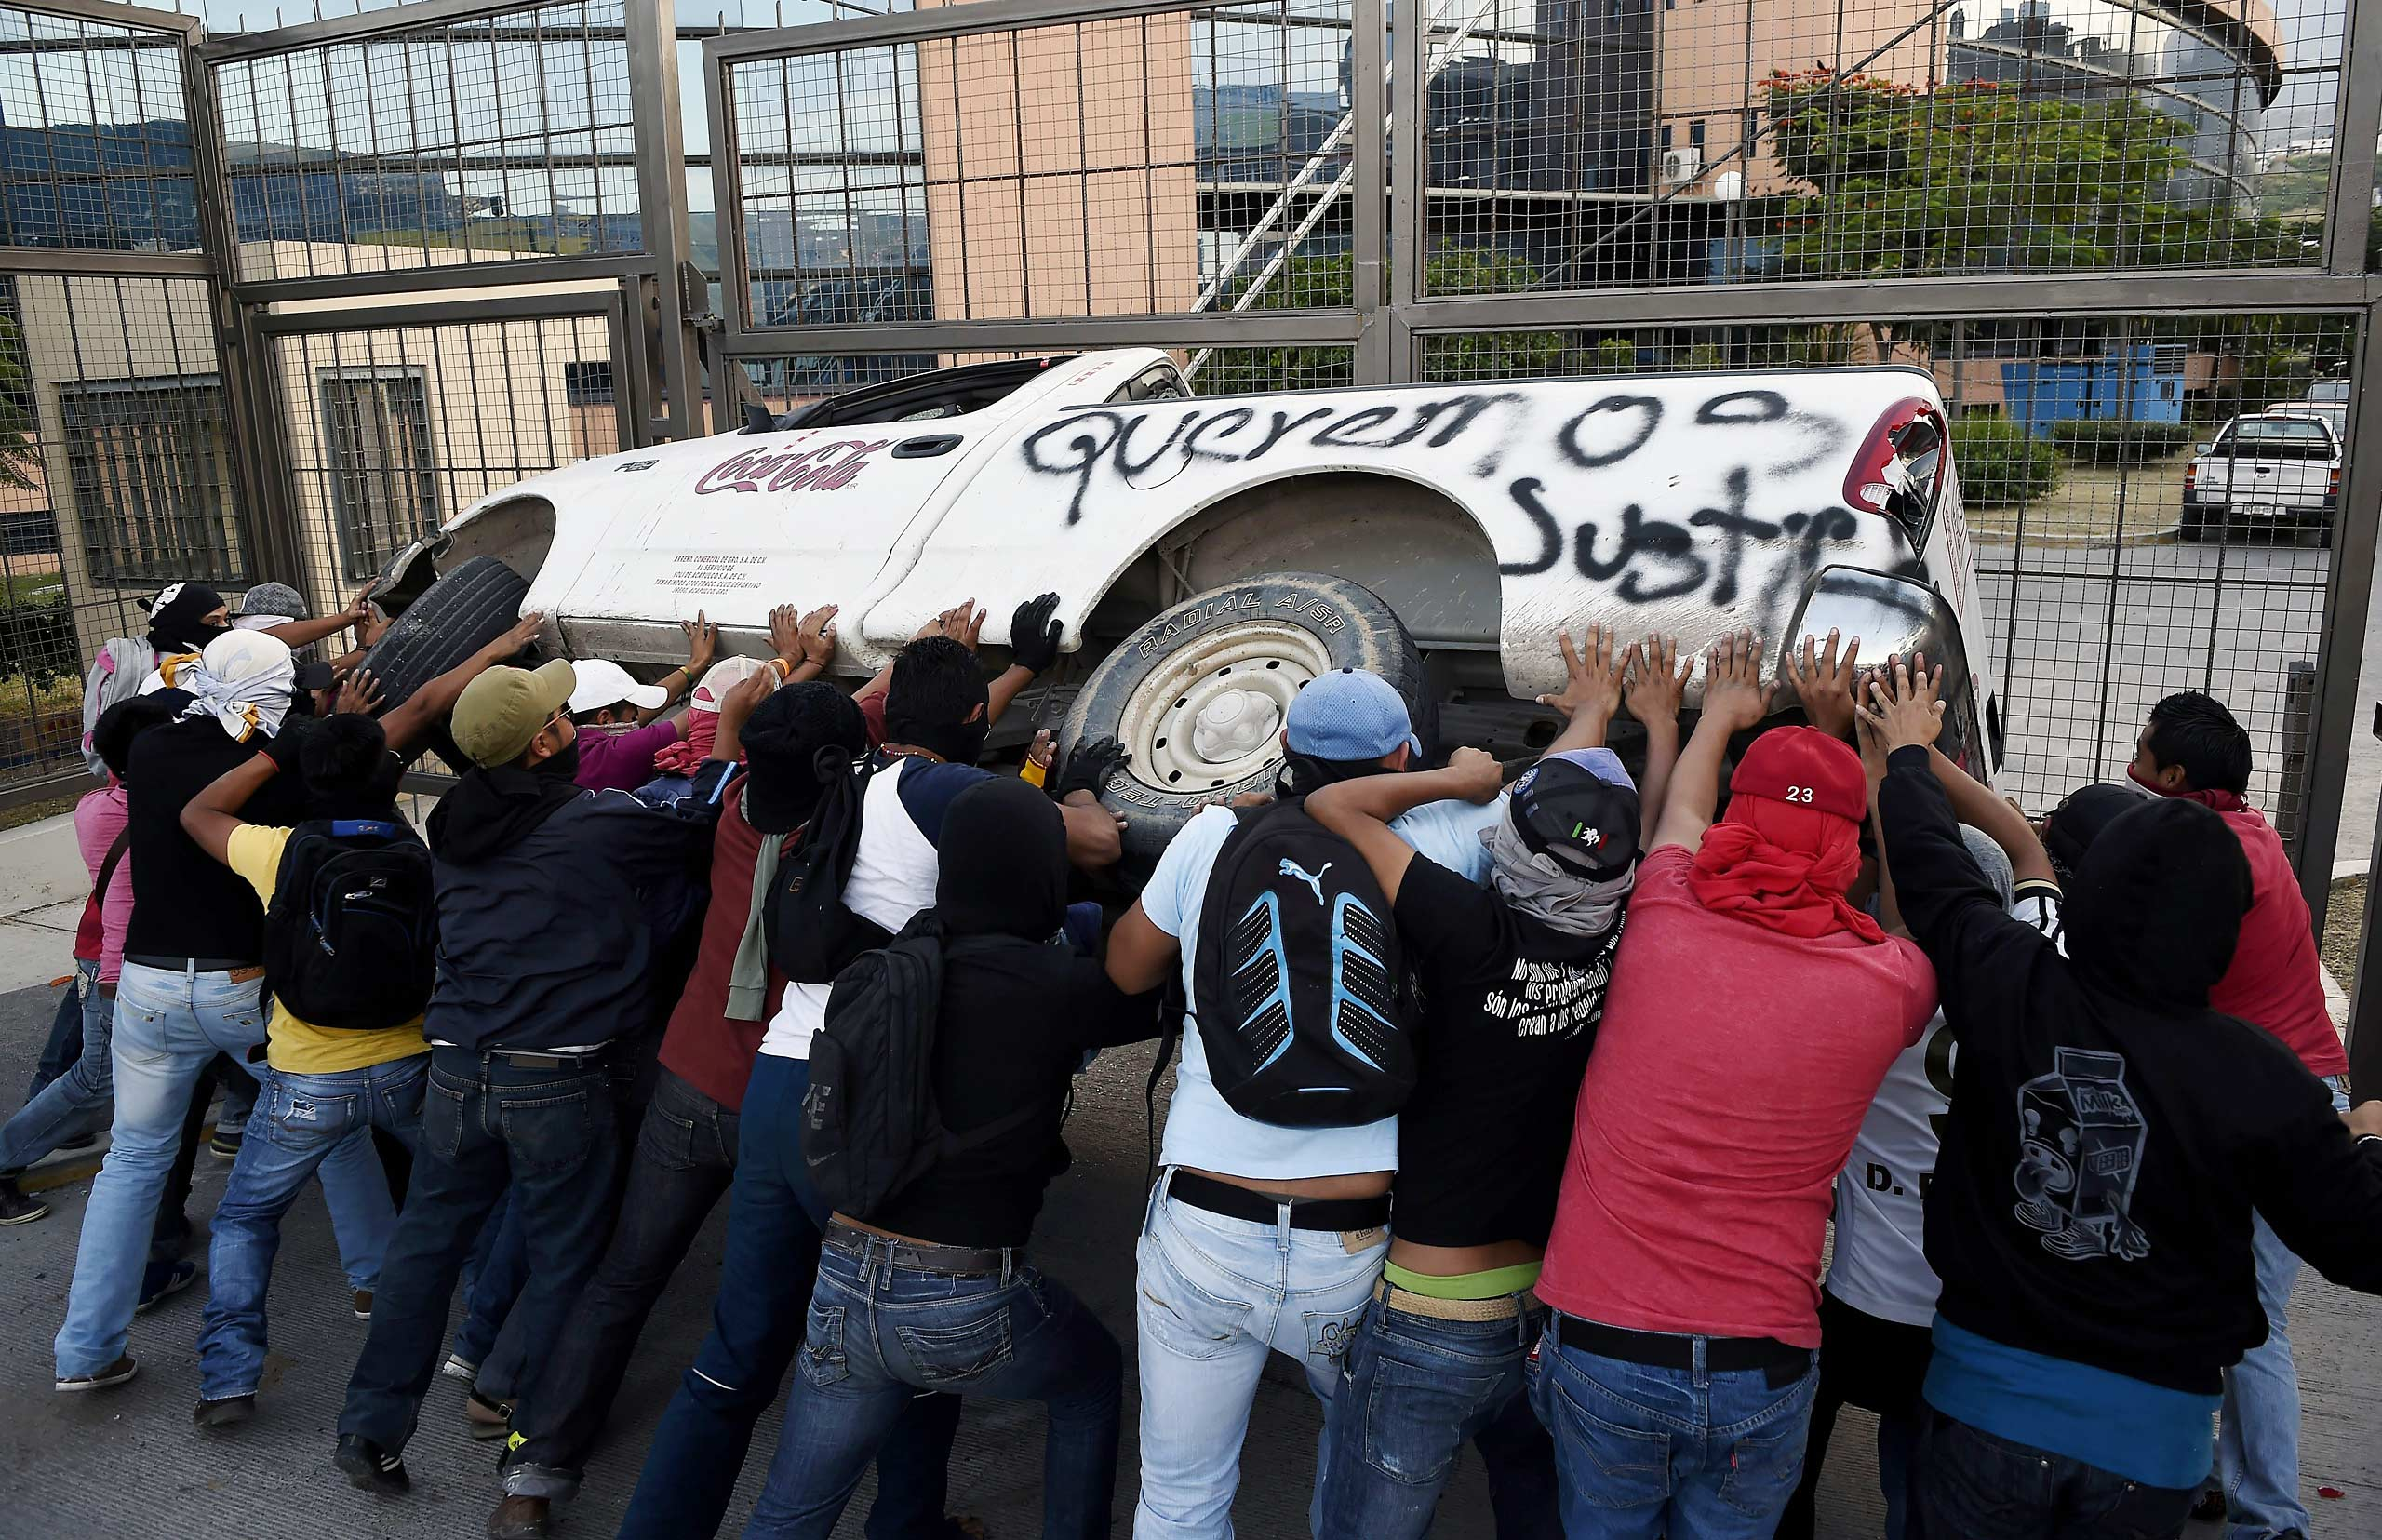 Students from the Ayotzinapa school take part in a protest outside the State Government headquarters in Chilpancingo, Mexico, on November 8, 2014.